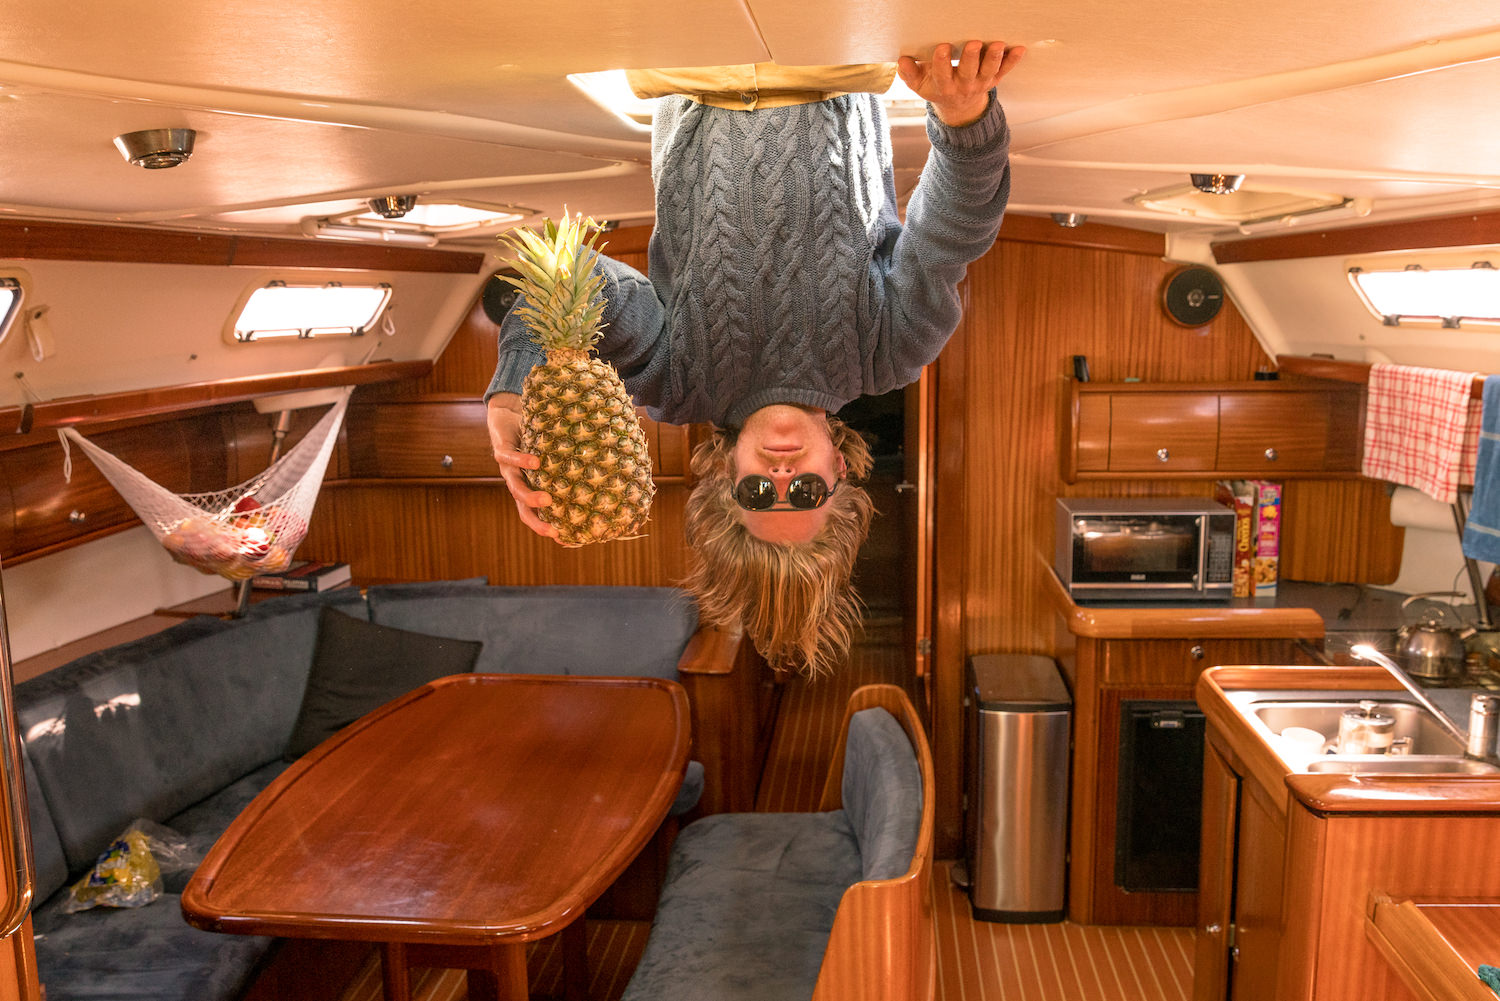 Man hanging upside down in the under deck of a boat and holding a pineapple.